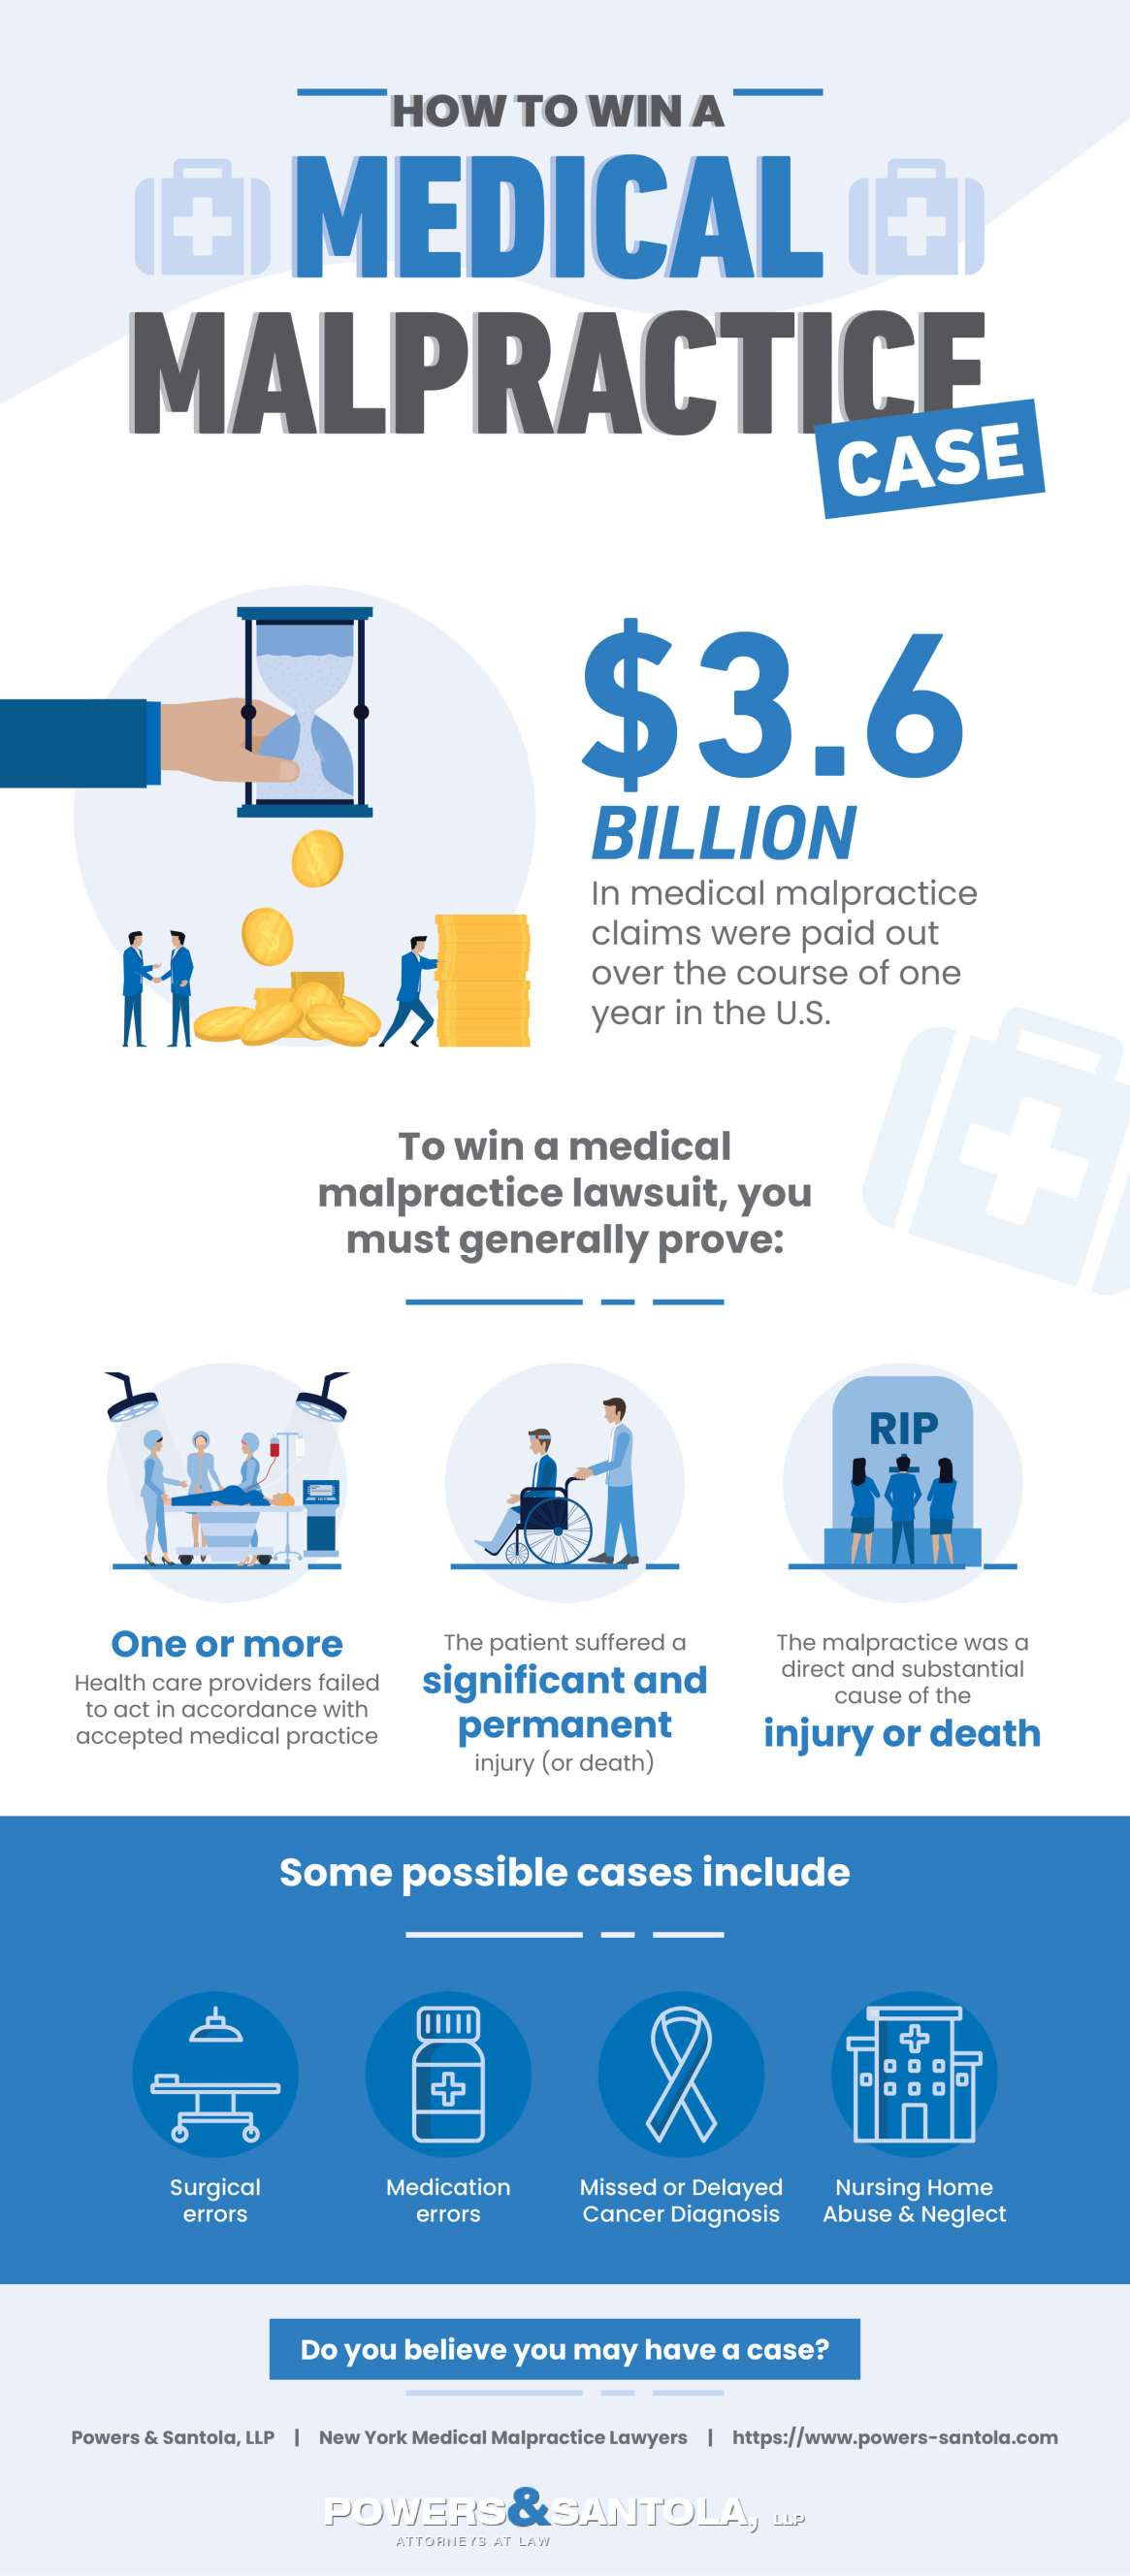 How to Win a Medical Malpractice Case